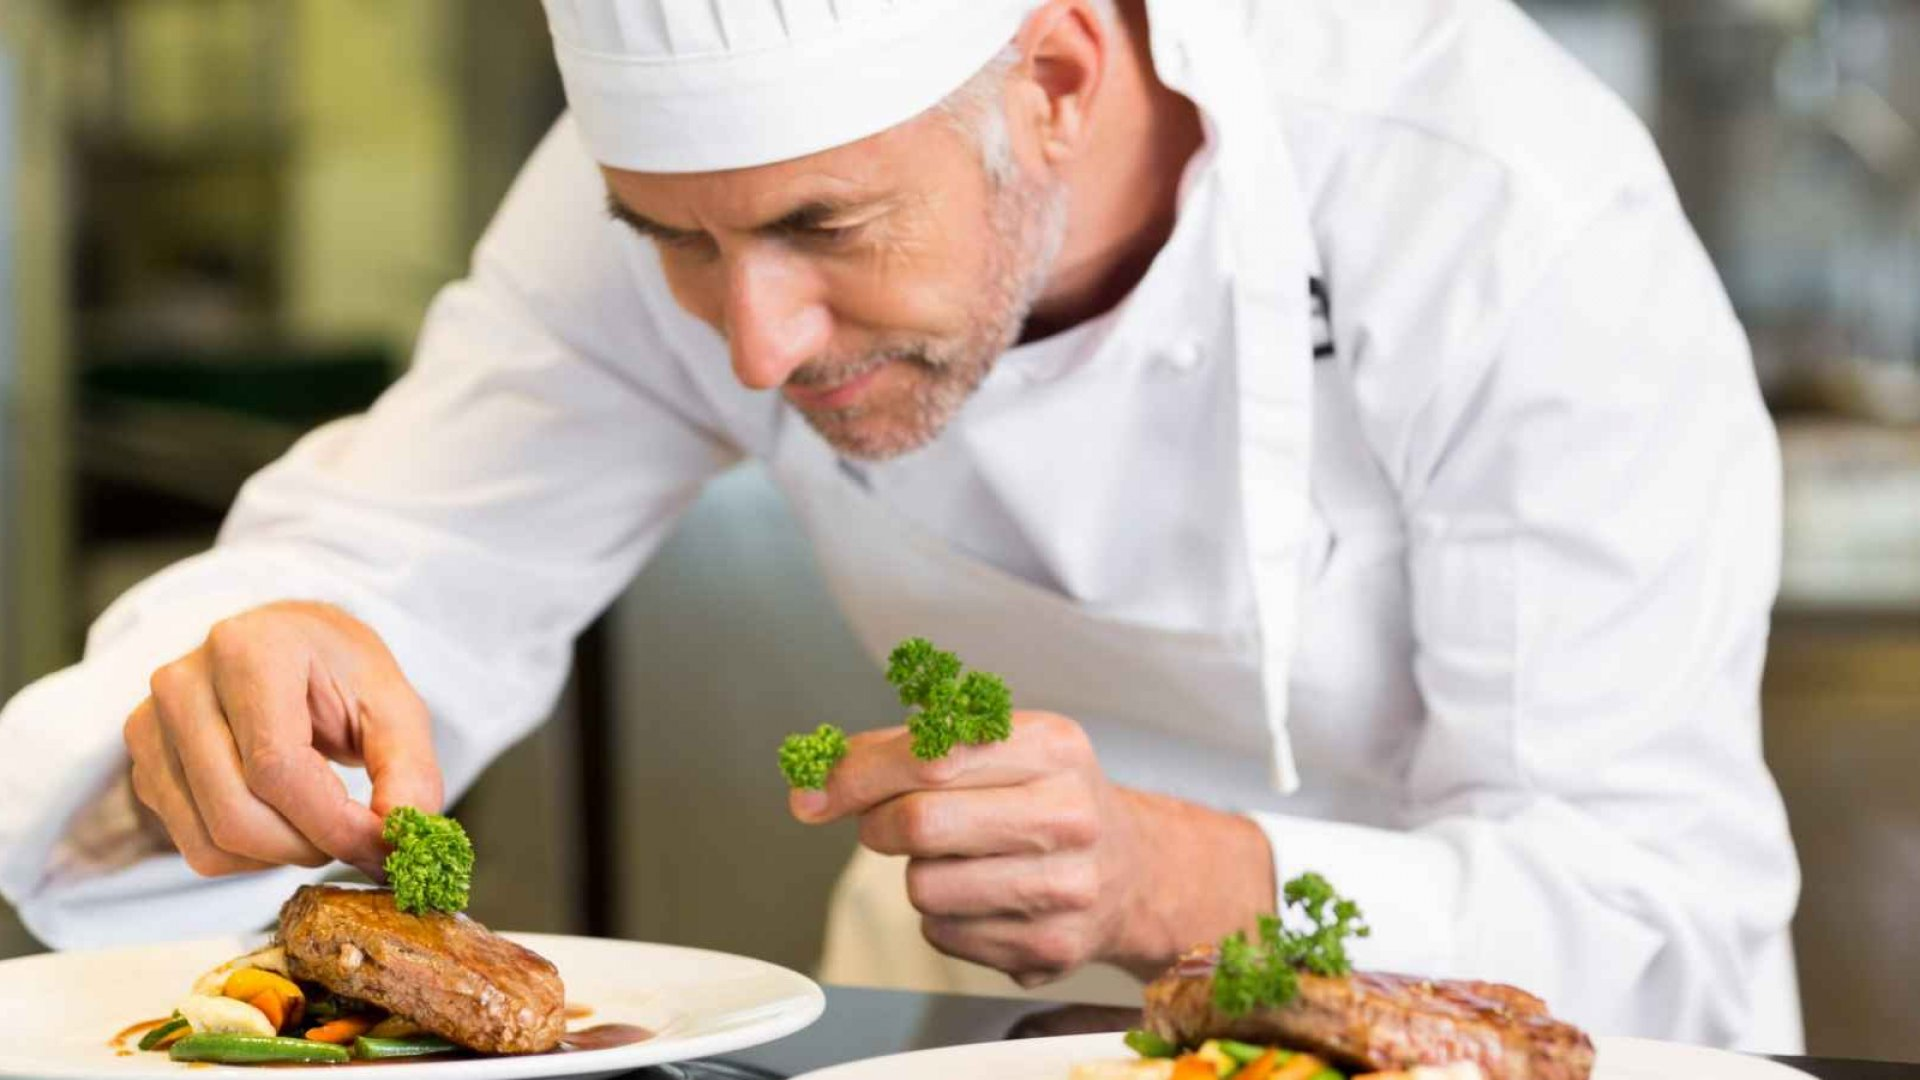 5 Habits of Highly Effective Chefs